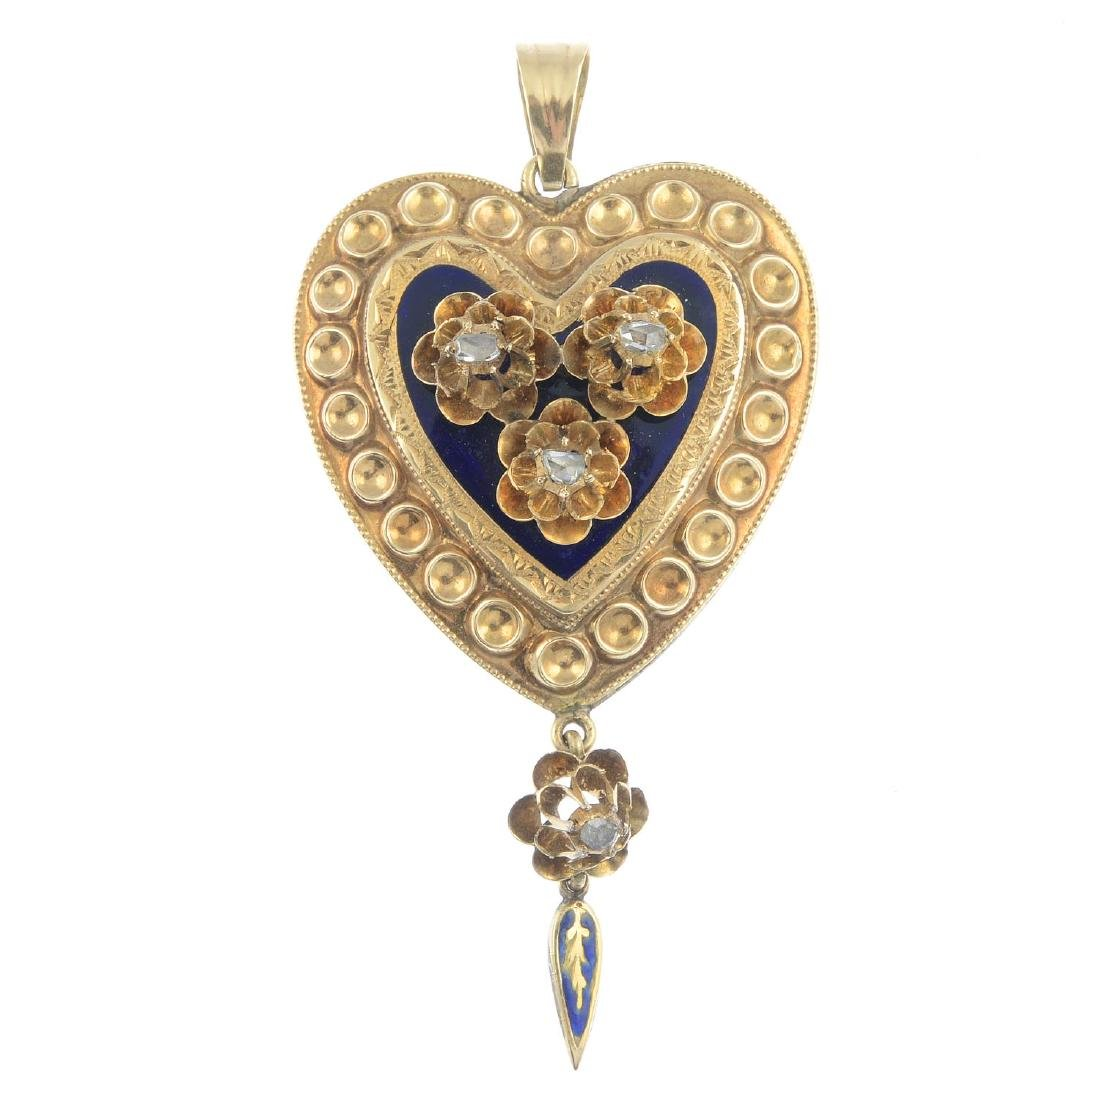 A diamond and enamel pendant. The heart-shape blue